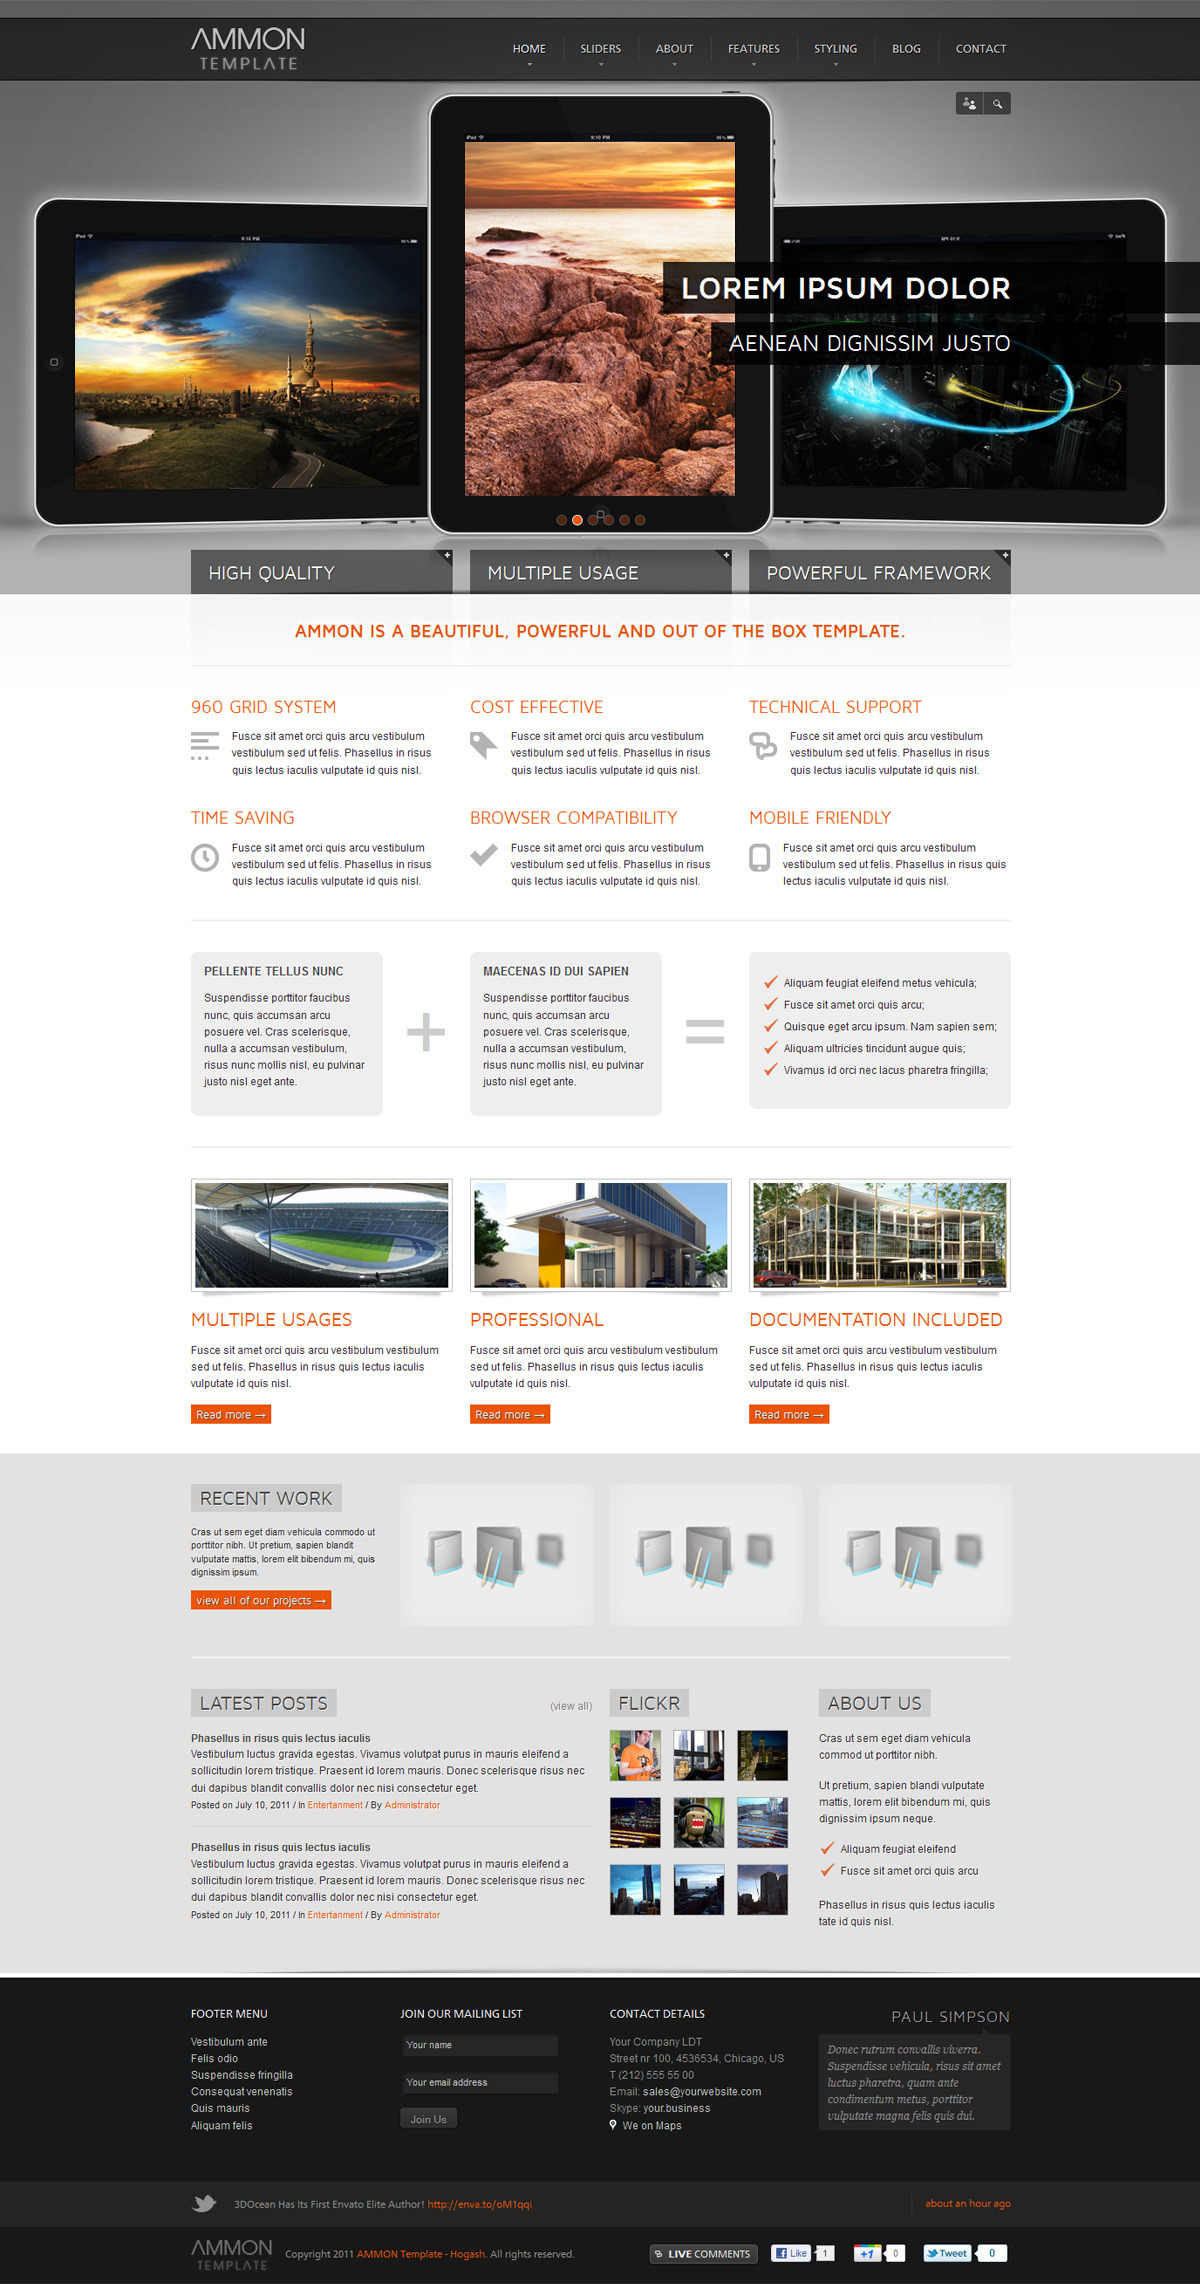 Ammon Template - GENERAL PAGE - HOMEPAGE - FULL SLIDER 2